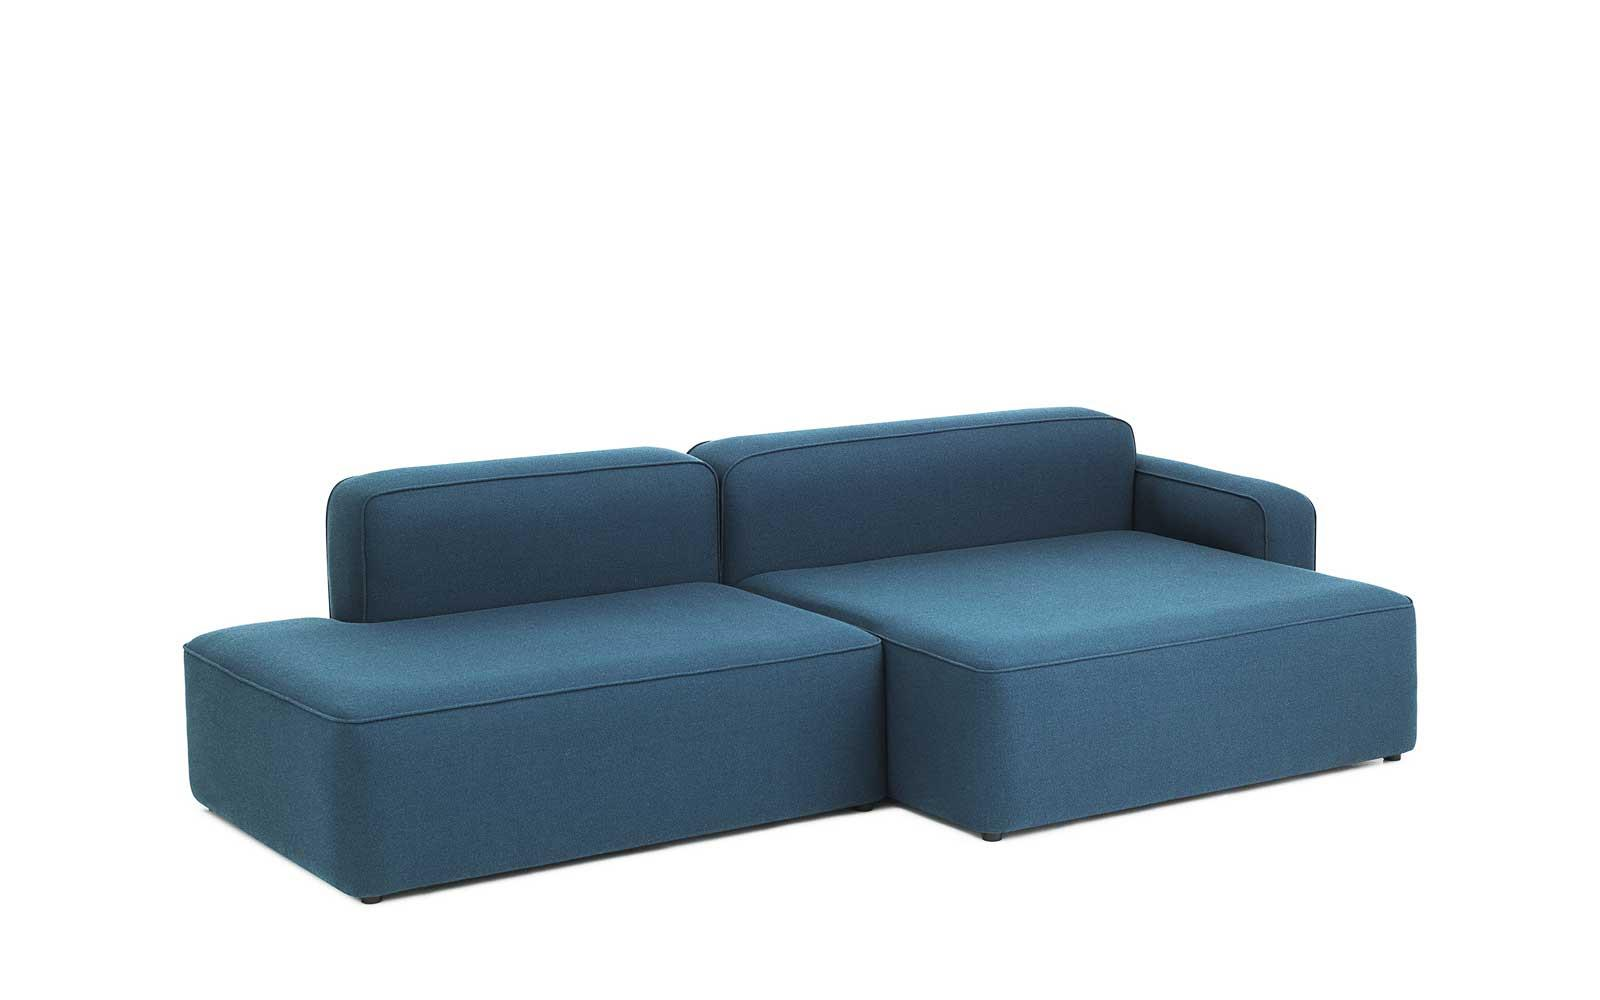 modular lounge with sofa bed adelaide ekornes reviews chaise rope right fame hybrid